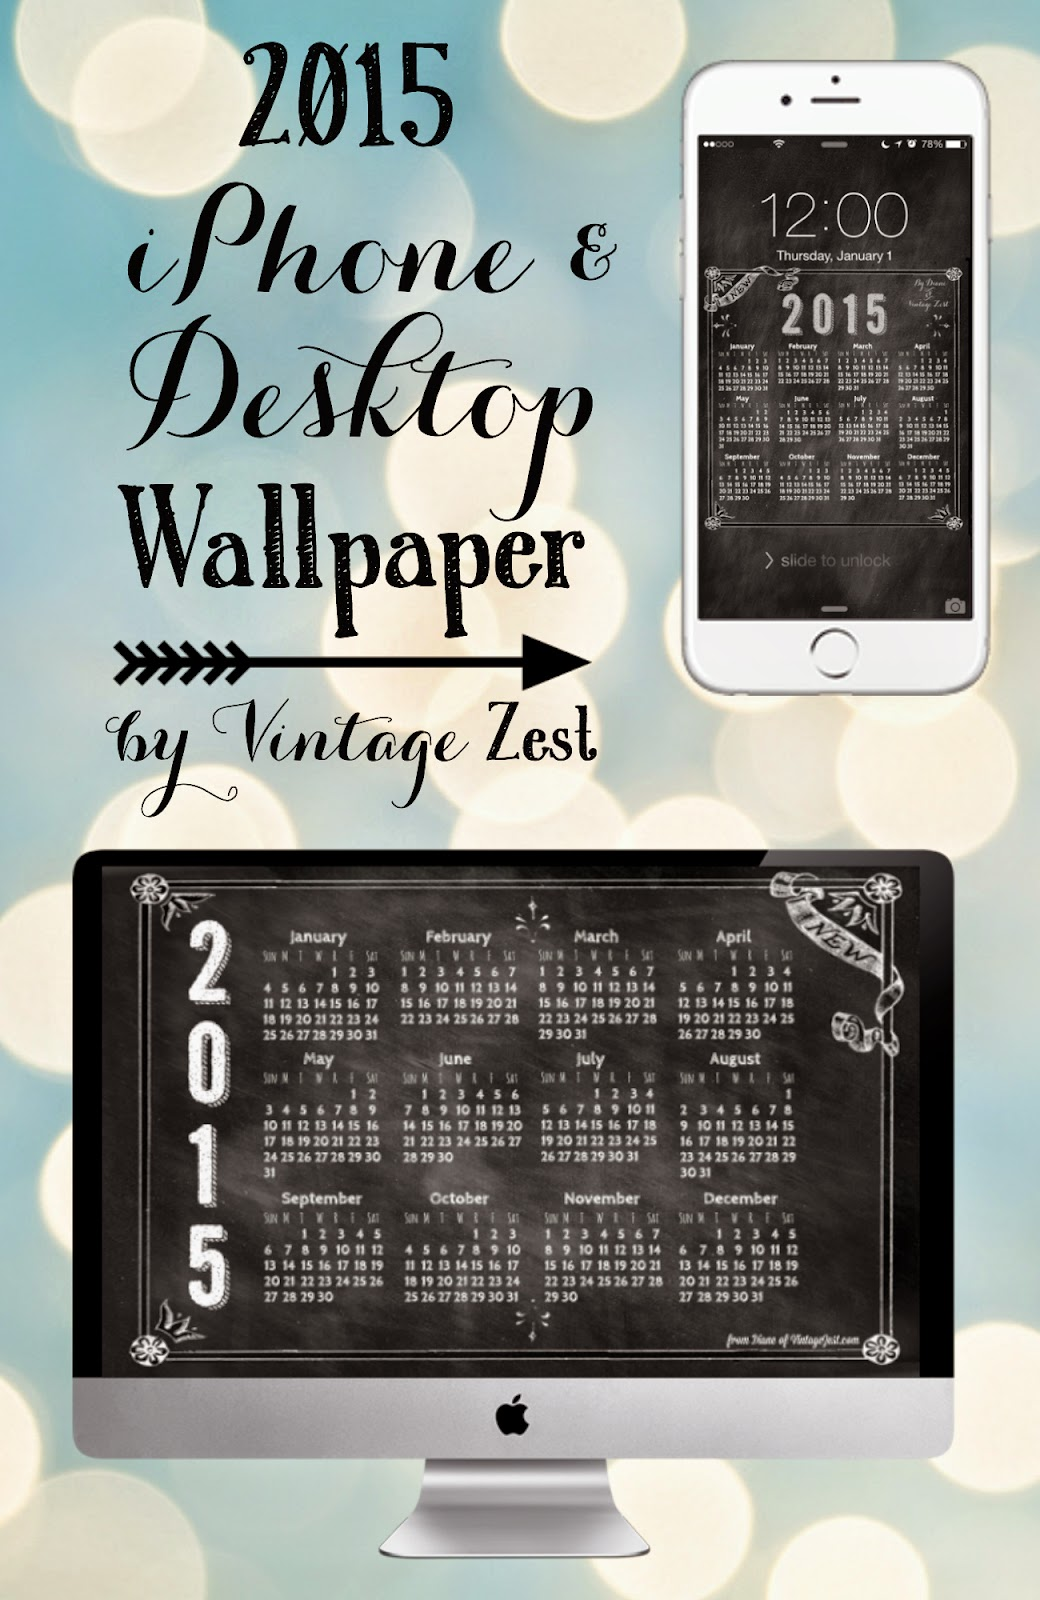 2015 iPhone & Desktop Wallpaper Freebies! on Diane's Vintage Zest!